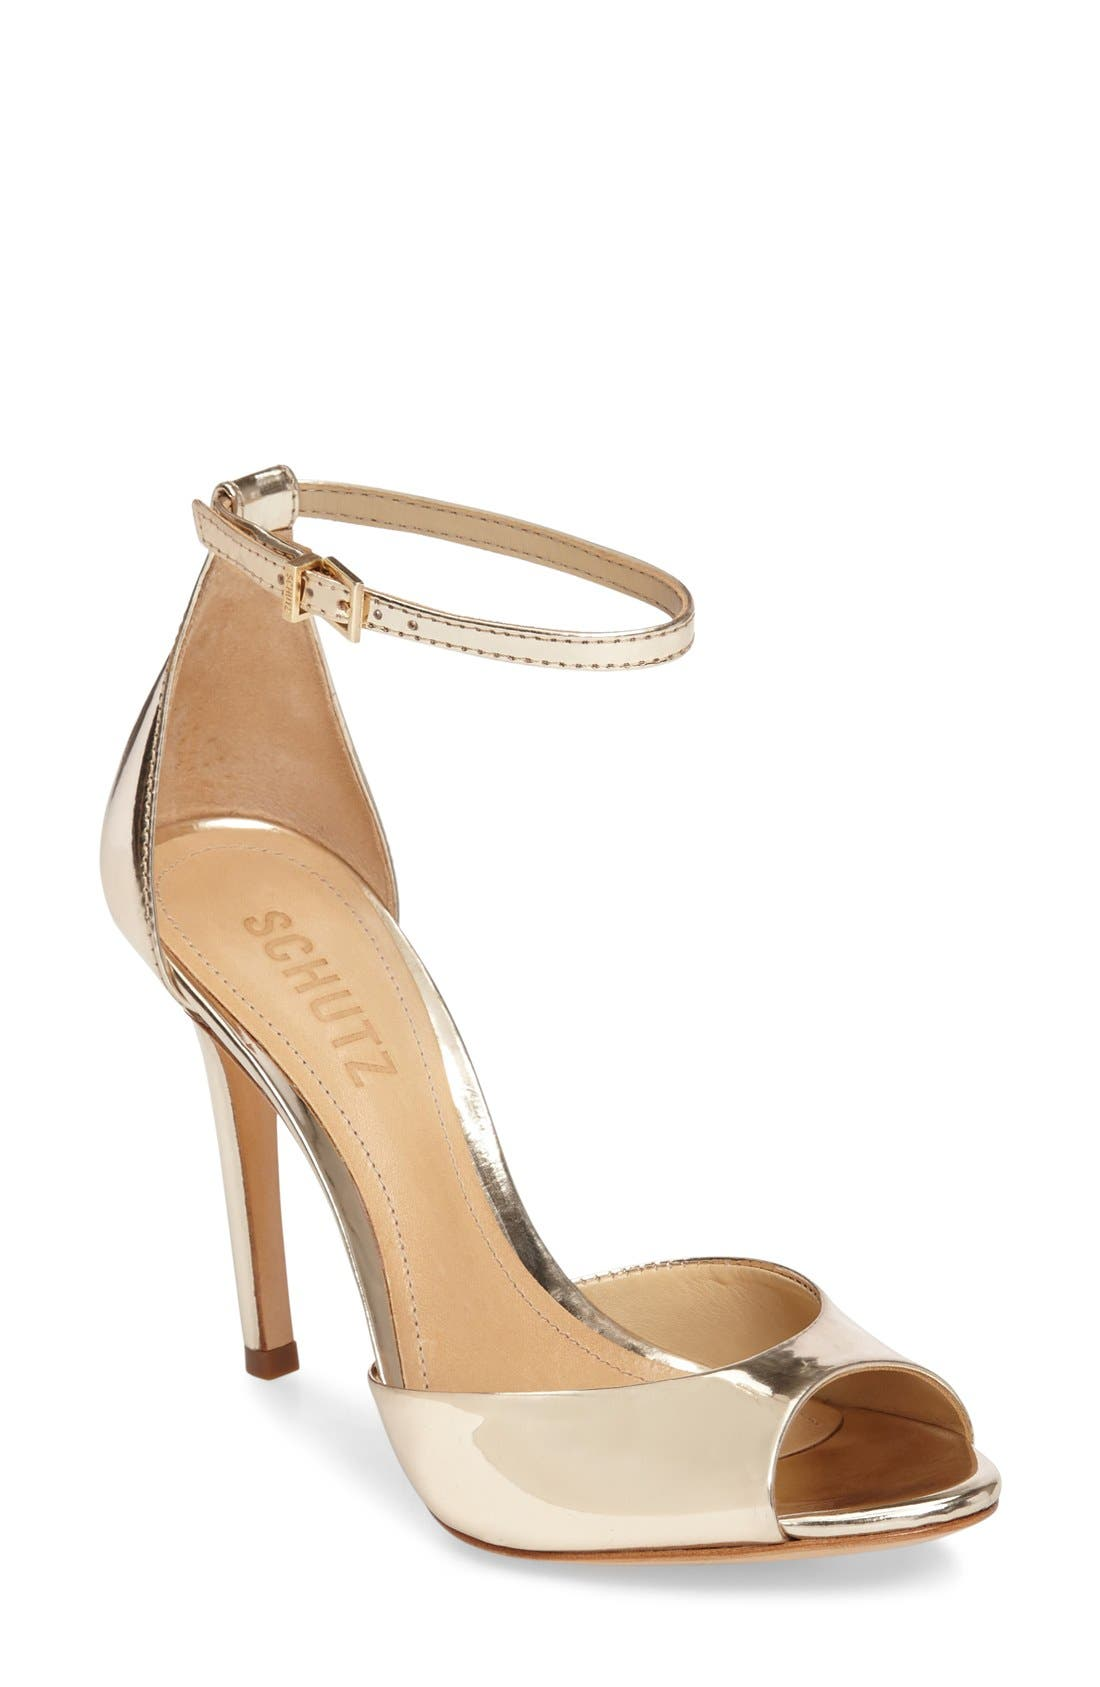 Alternate Image 1 Selected - Schutz Saasha Lee Ankle Strap Sandal (Women)